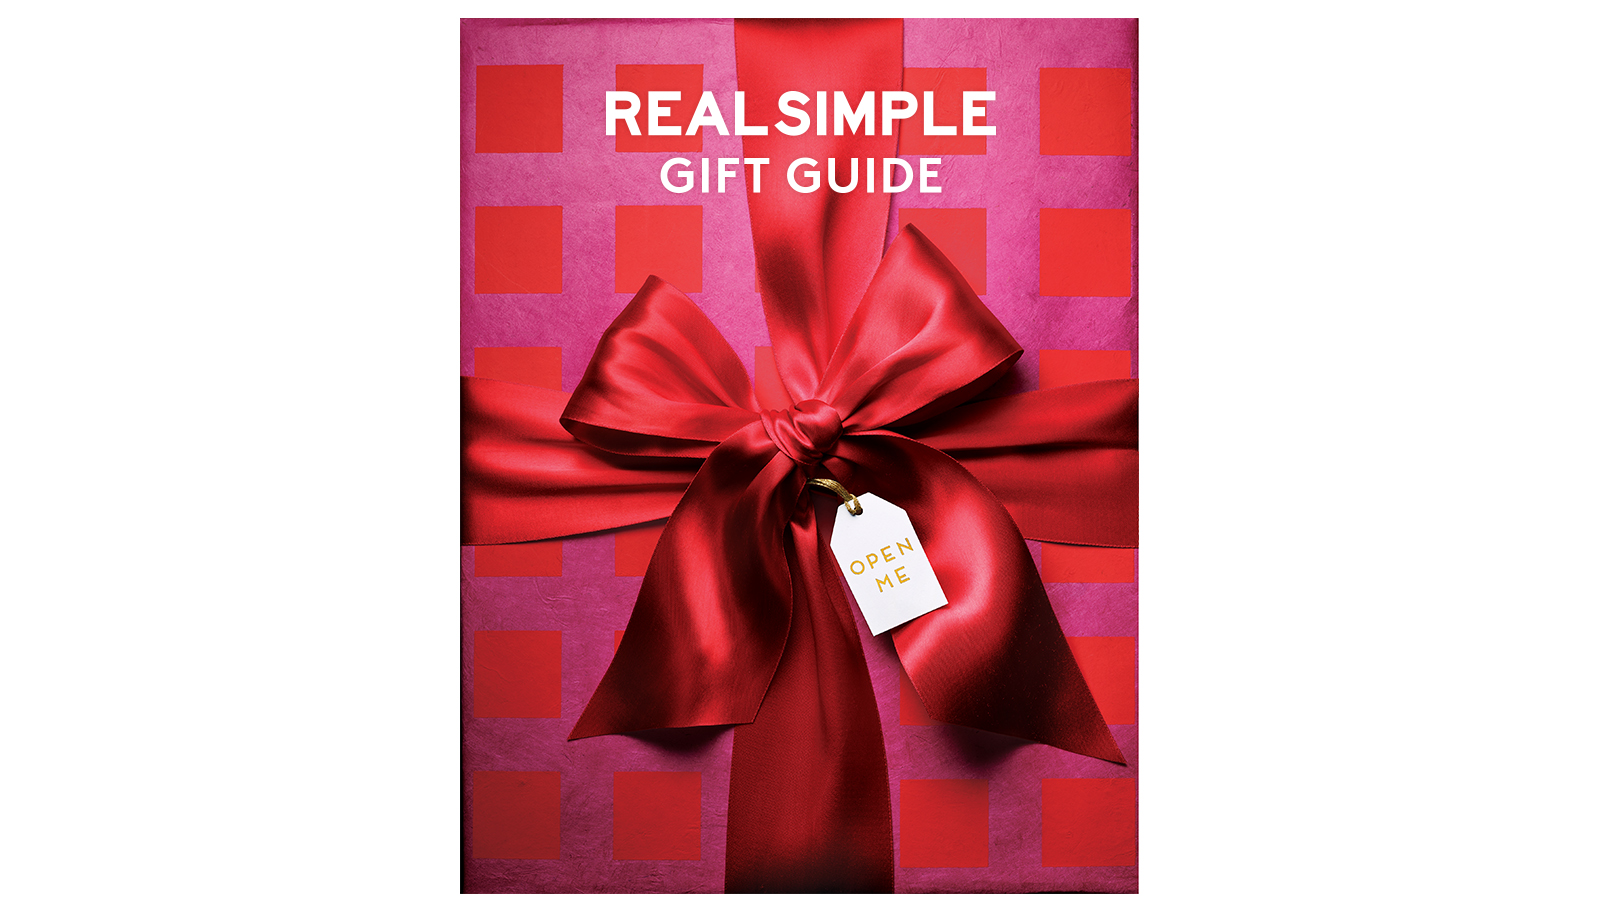 Real Simple Gift Guide App